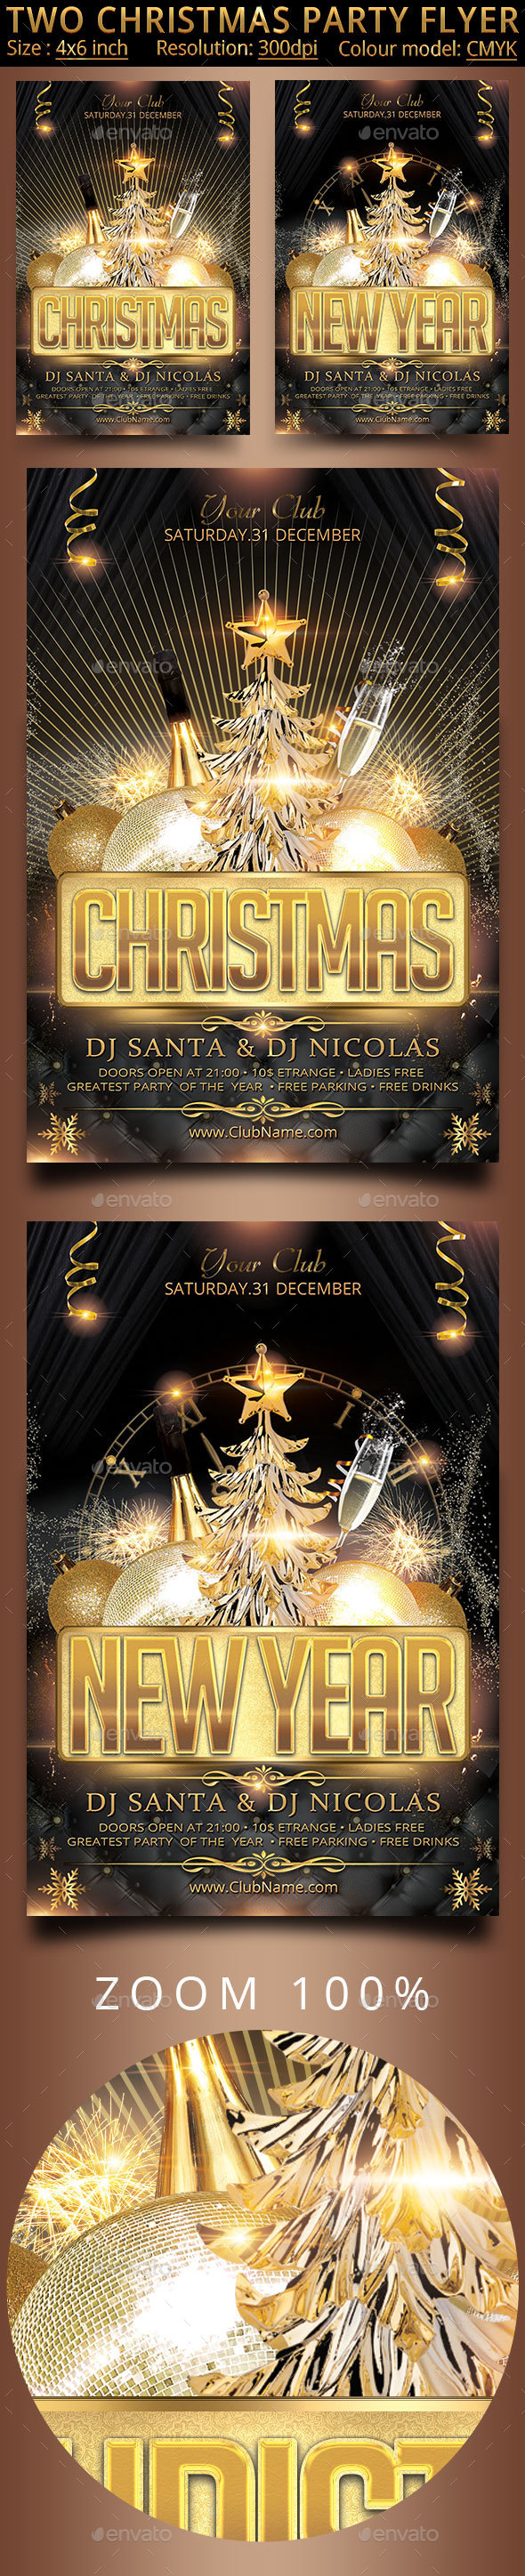 Two Christmas Party Flyer - Clubs & Parties Events